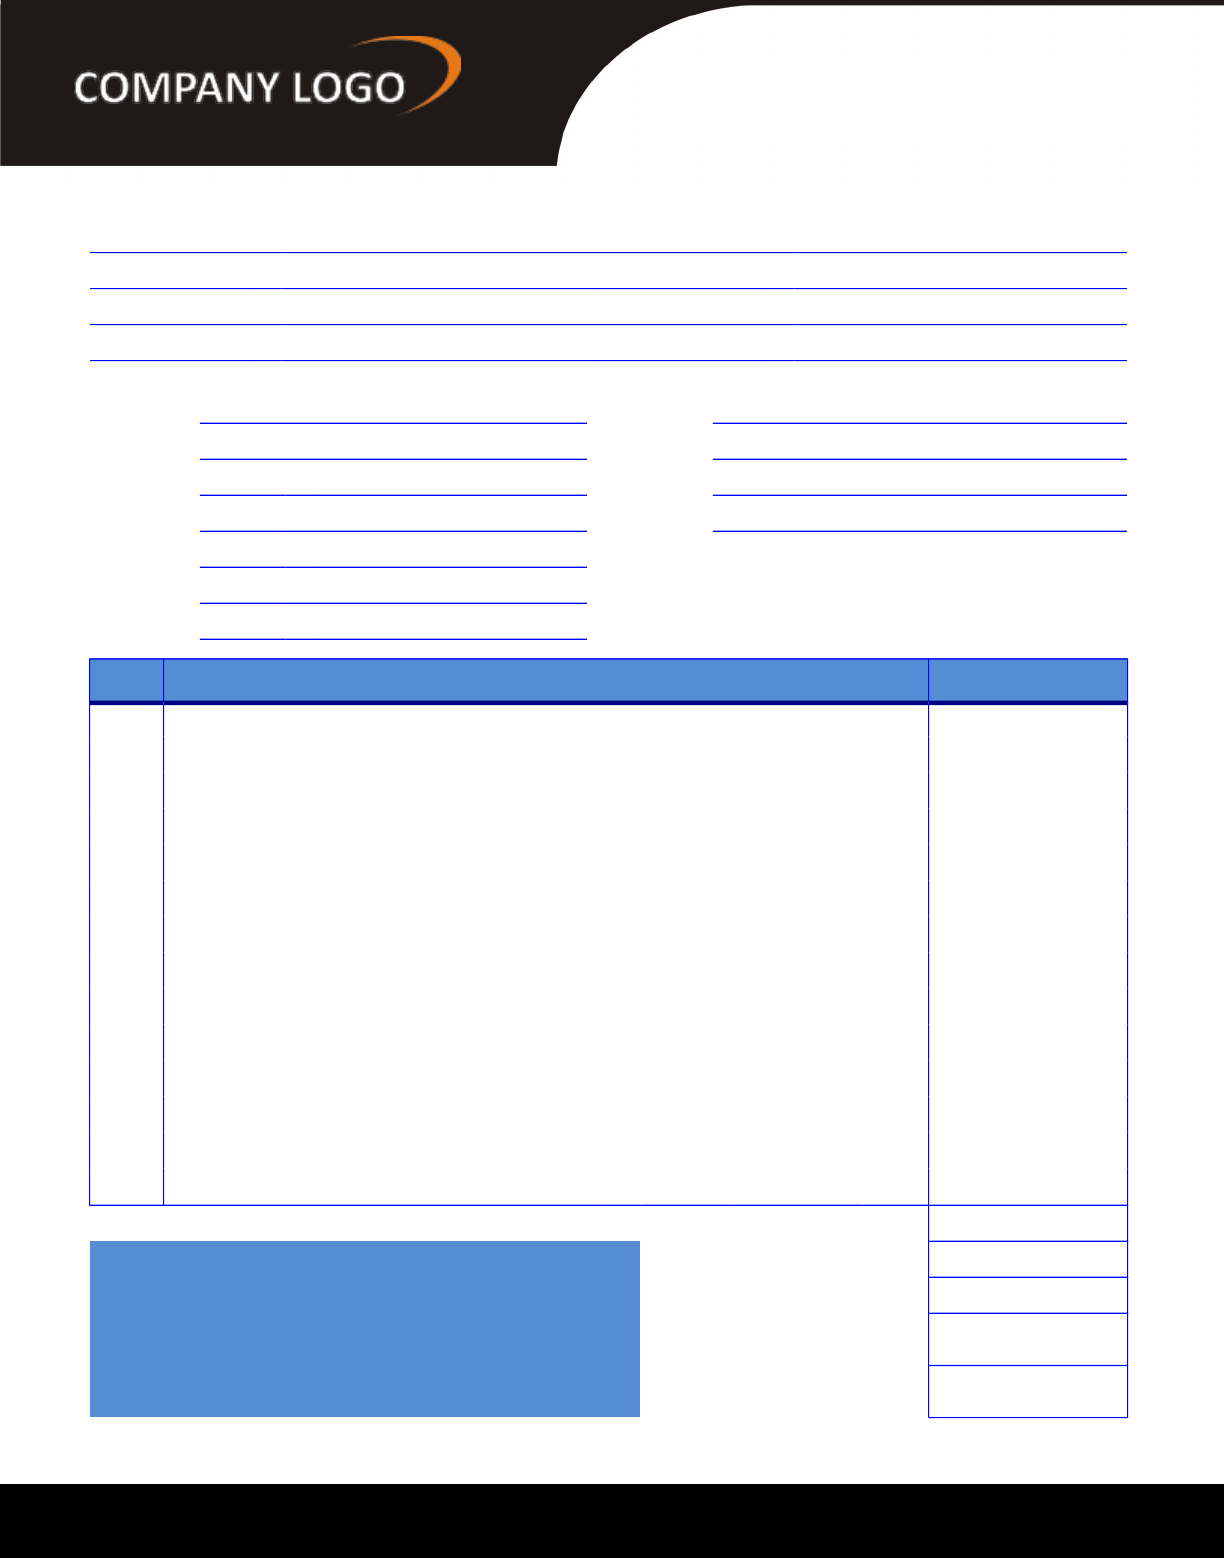 the graphic design invoice template can help you make a graphic design invoice template